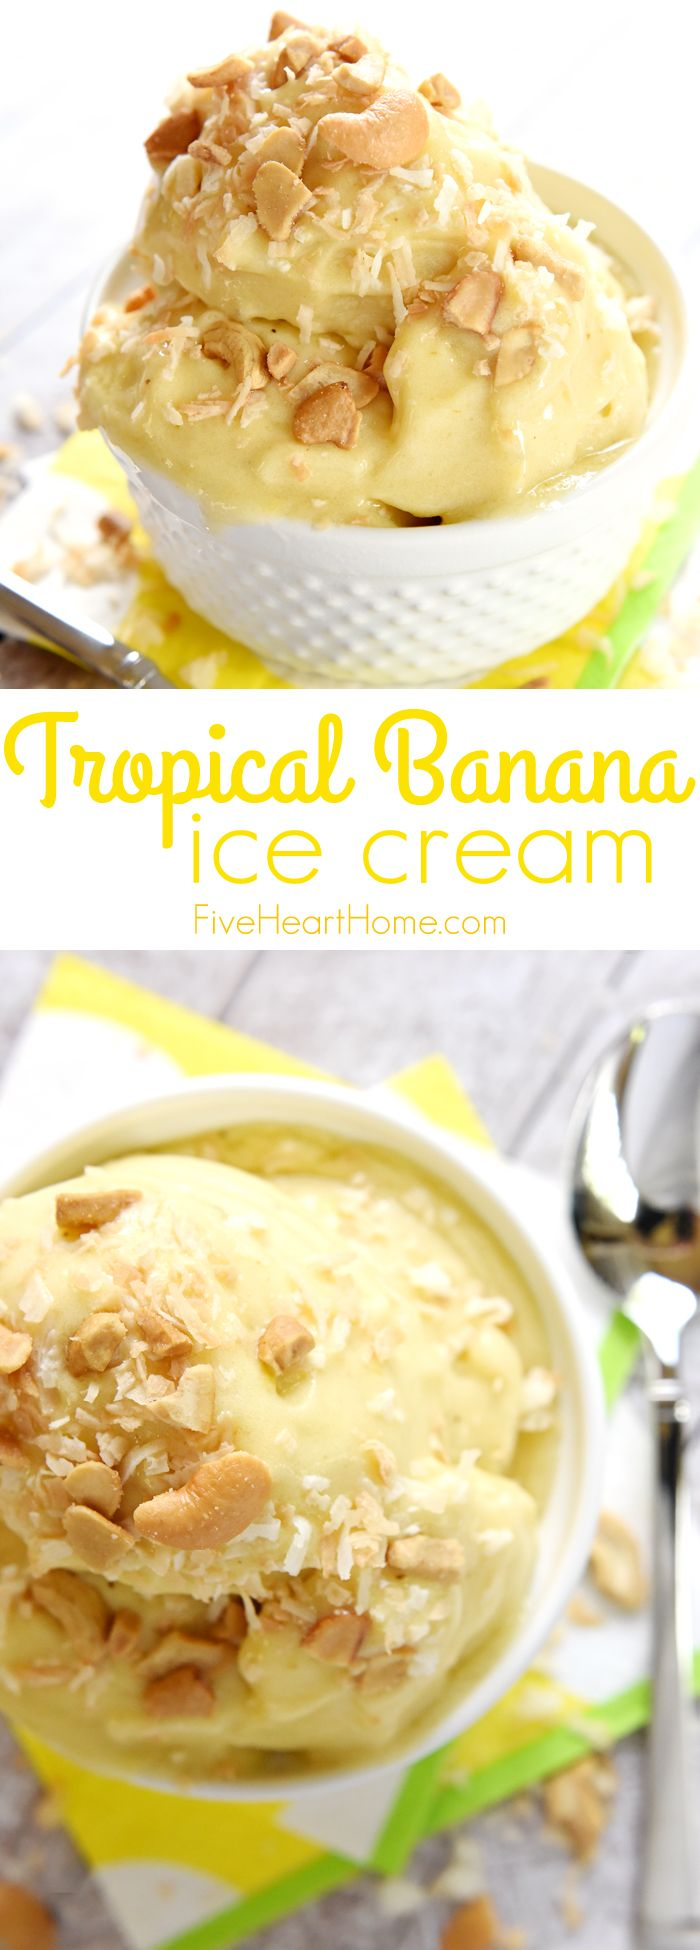 """Tropical Banana """"Ice Cream"""" ~ features frozen bananas, pineapple, and mango whipped to an ice cream-like consistency for an all-natural, all-fruit treat with no added sugar...decadent enough for dessert yet healthy enough for breakfast! 